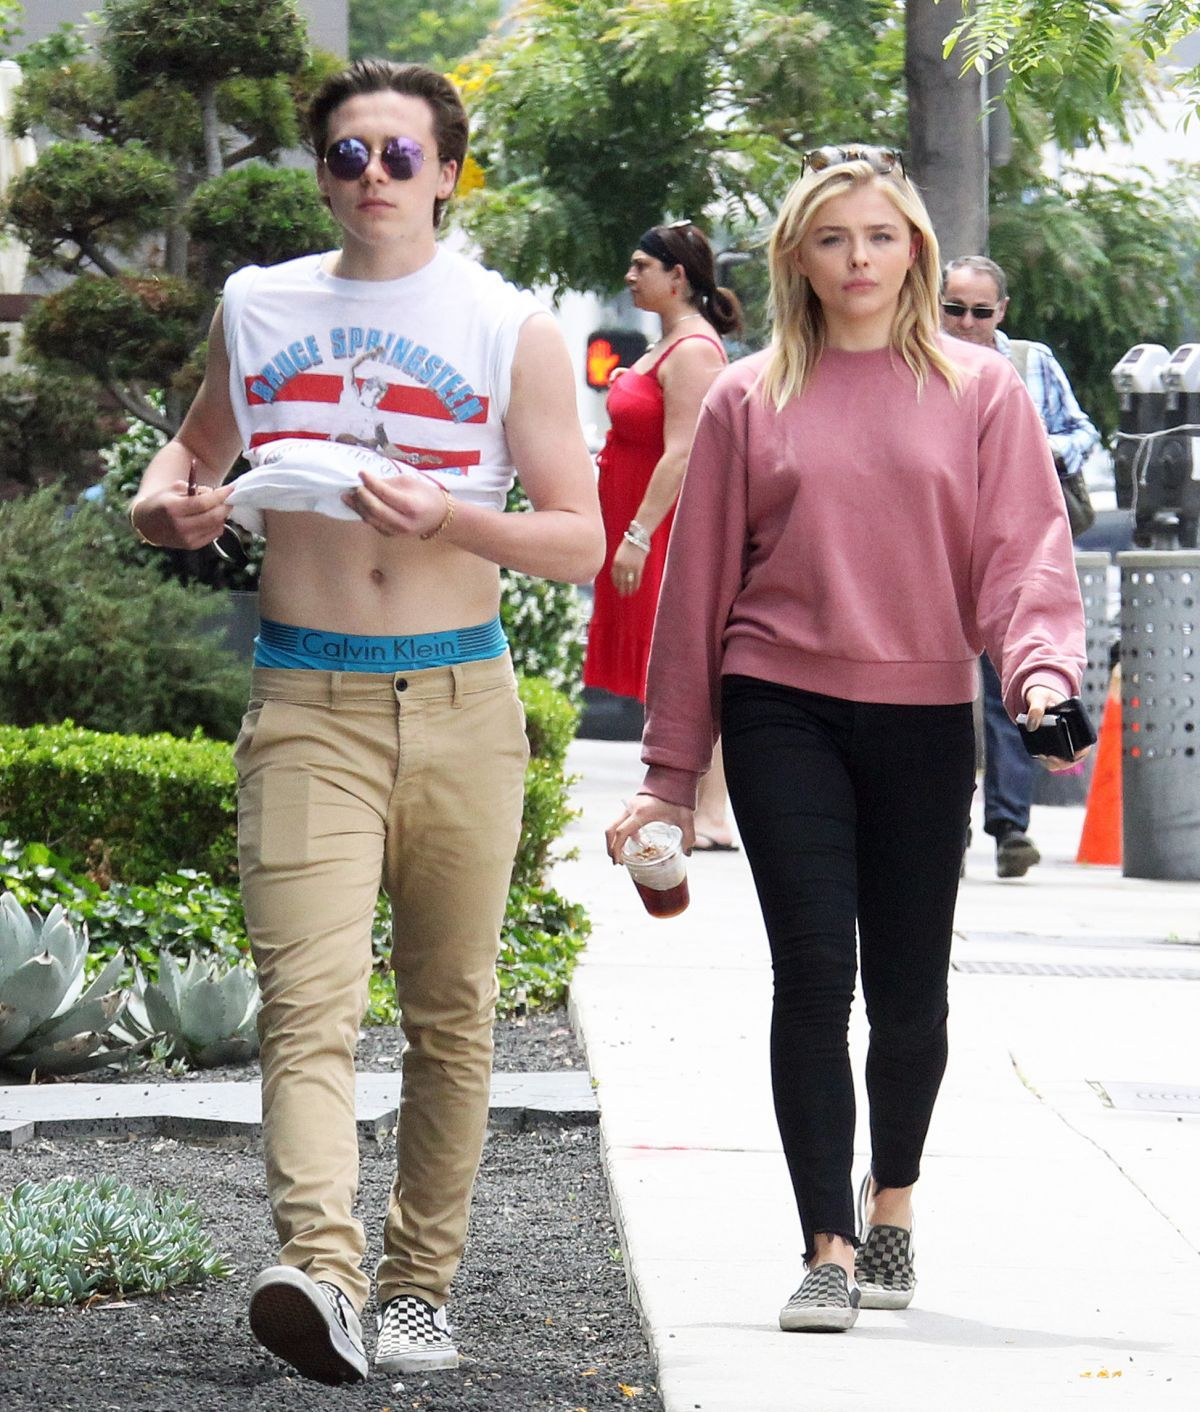 c9a04fb4613 CHLOE MORETZ and Brooklyn Beckham Out and About in West Hollywood 05 19 2016